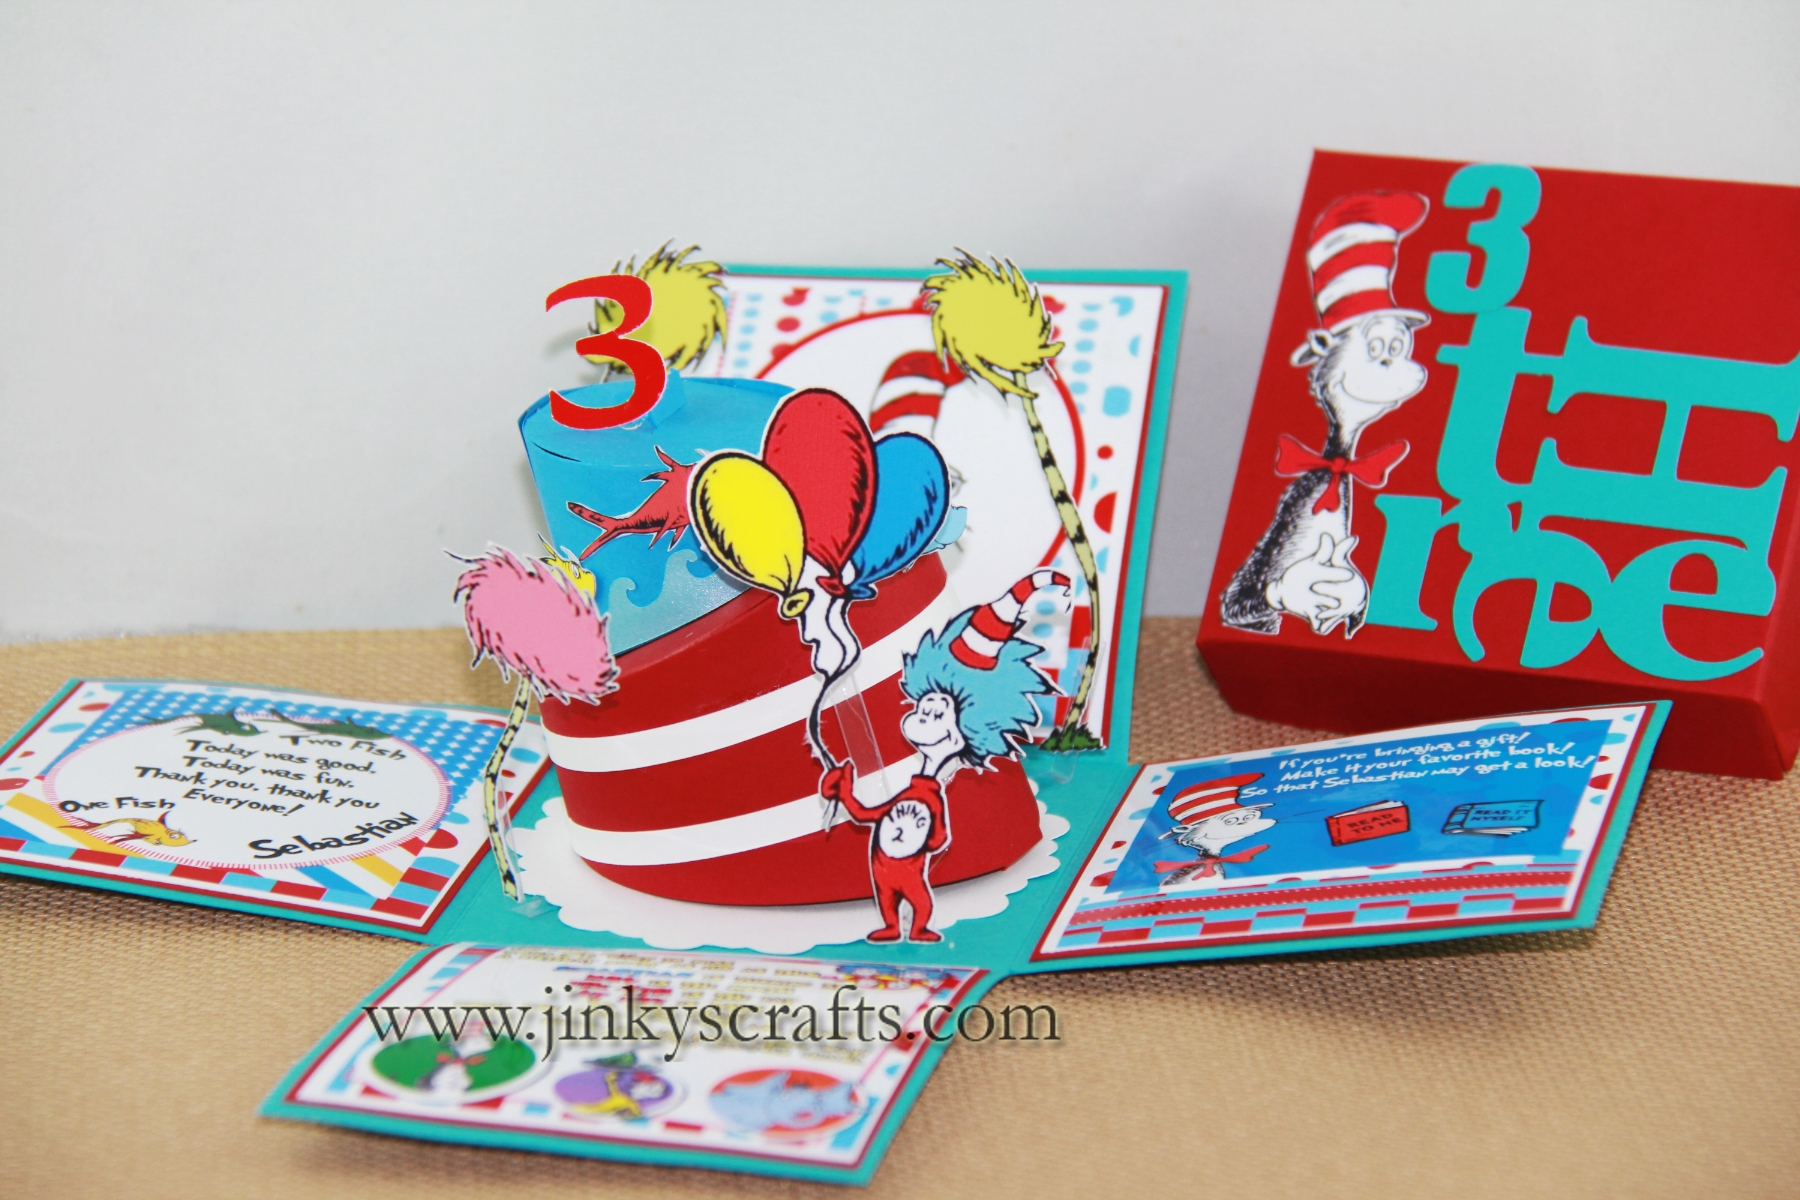 DR SEUSS BIRTHDAY BOX INVITATIONS Jinkys Crafts – Unique Birthday Invites